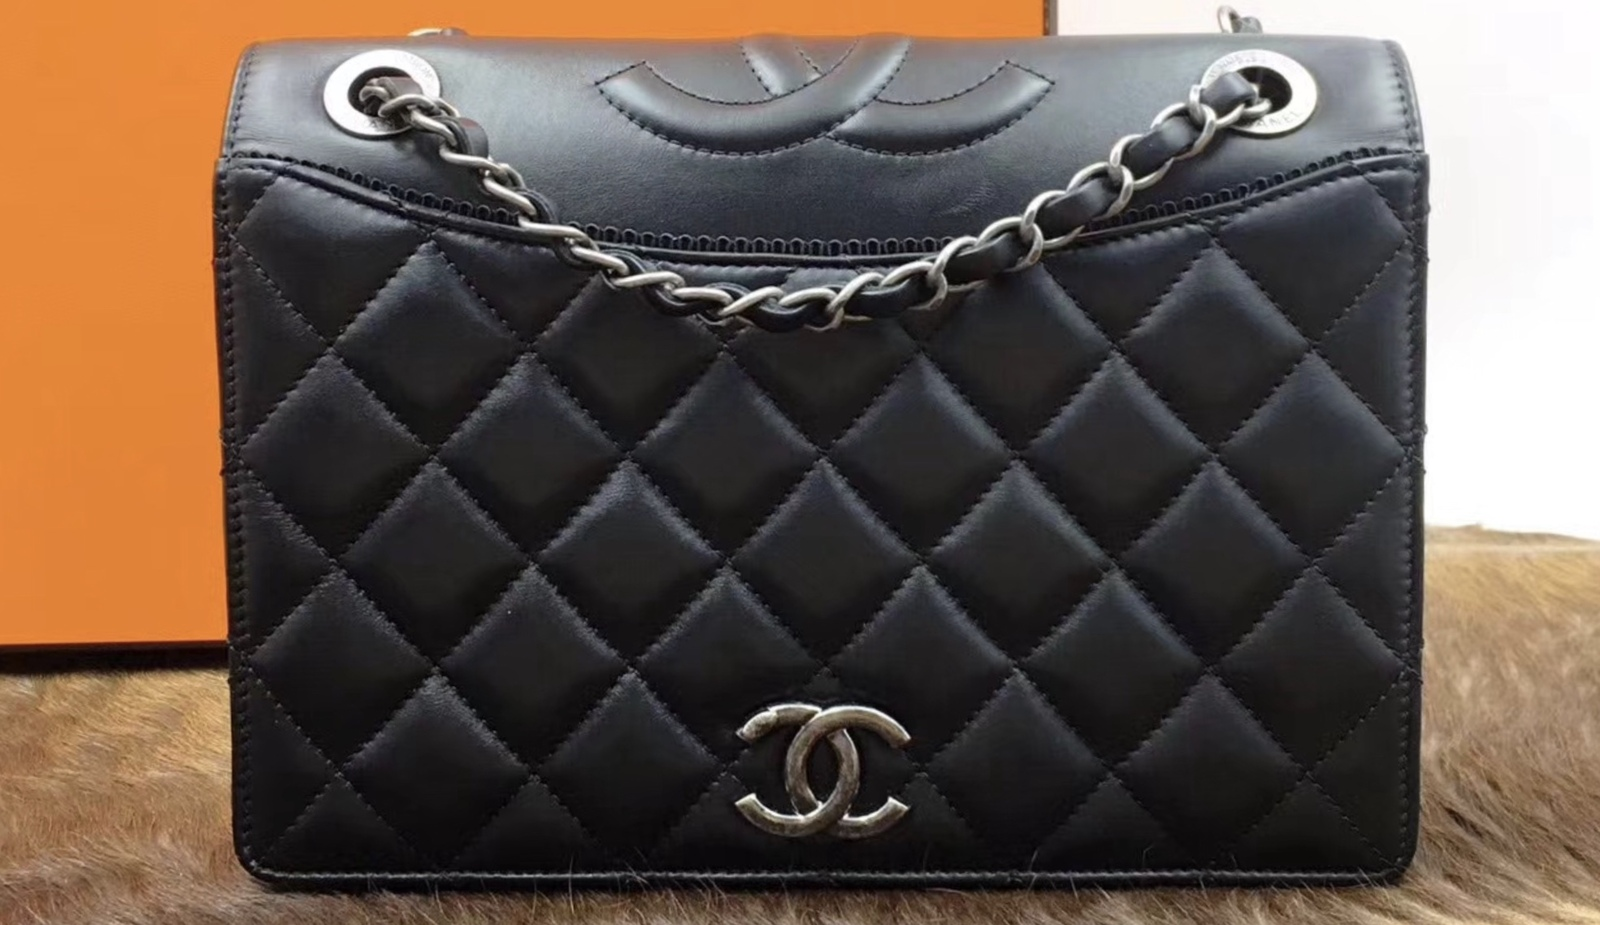 handbags flap quilted brand chanel authentic new quilt products black leather bag